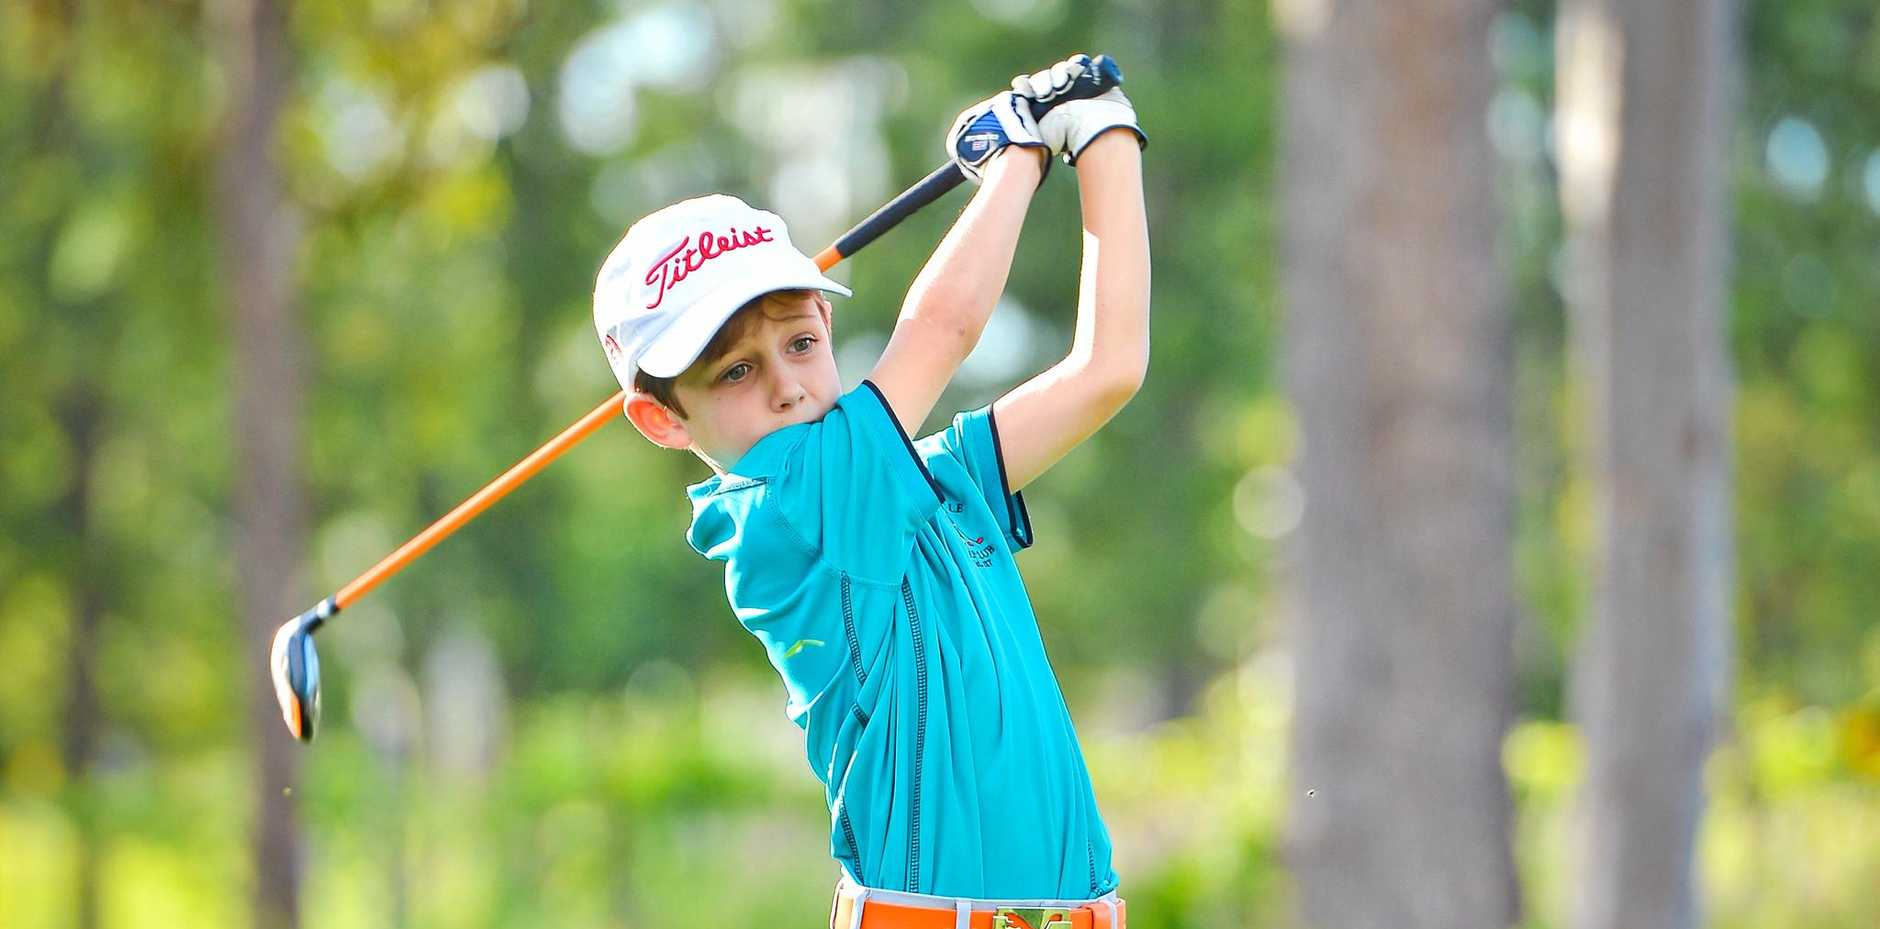 THE NEXT JASON DAY? Miriam Vale youngster Cody Anderson, 7, has just been selected to play for Australia in the US in July.